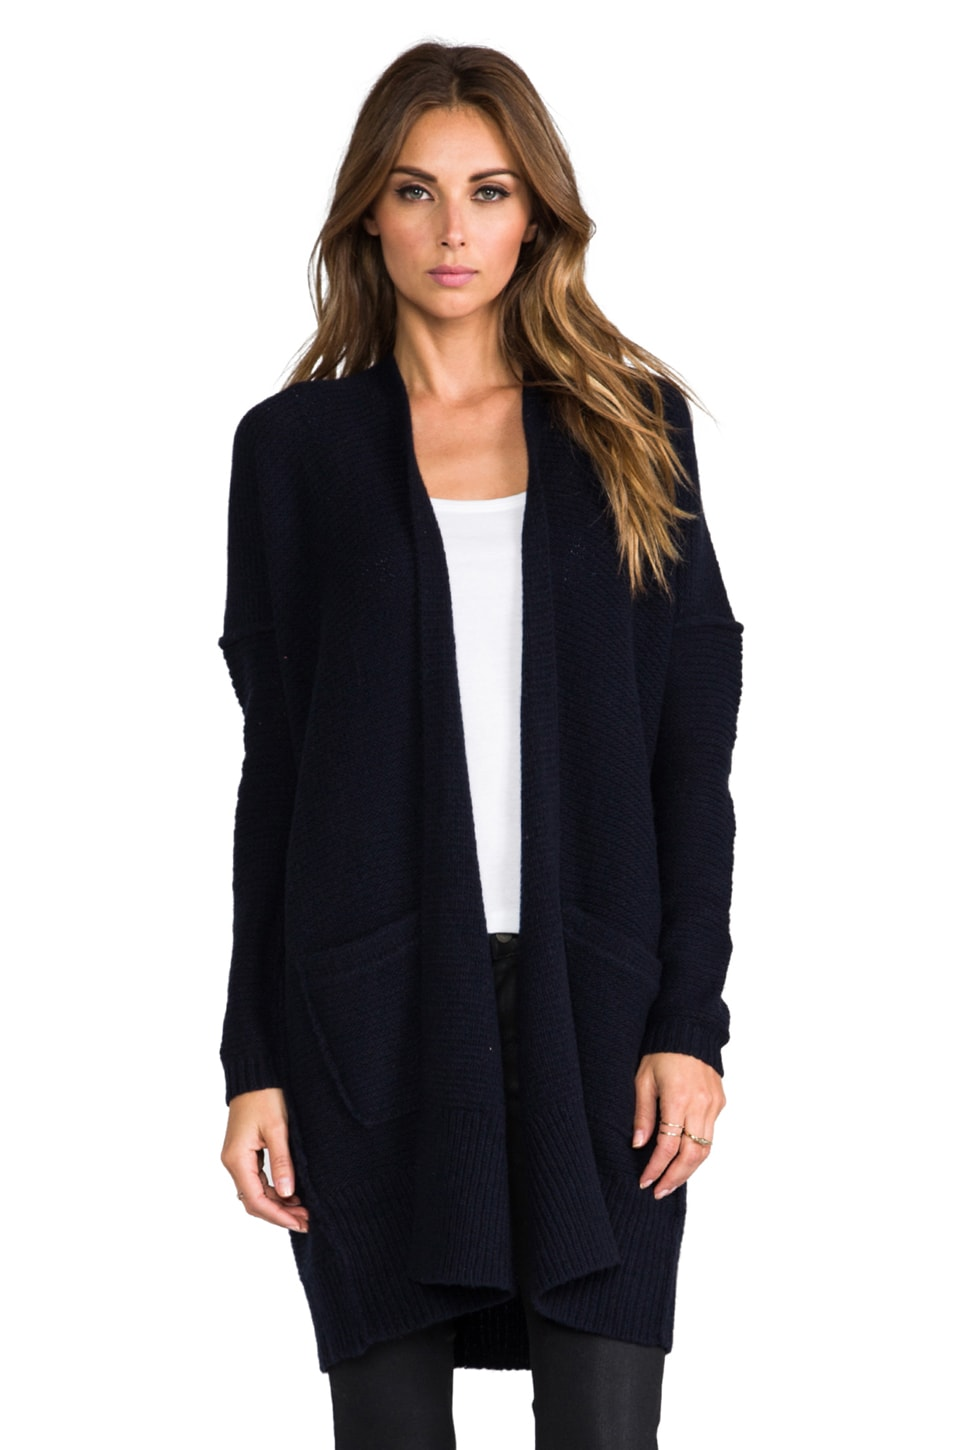 Inhabit Cashmere Chainette Cardigan in Navy